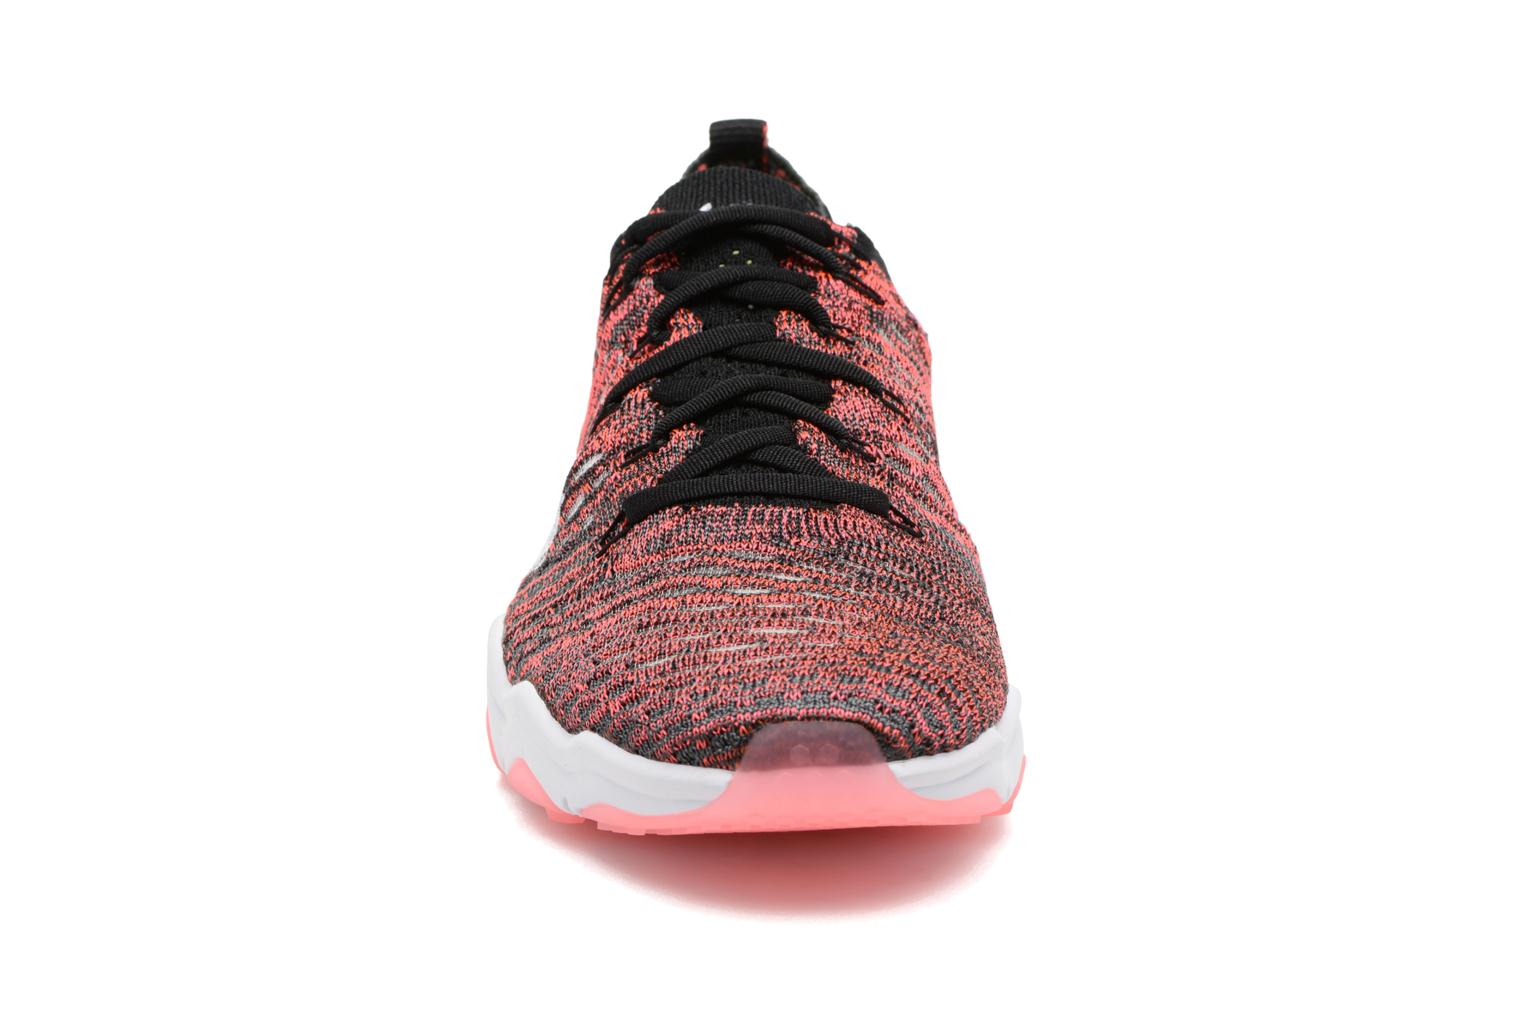 Zapatillas de deporte Nike W Air Zoom Fearless Flyknit Multicolor vista del modelo